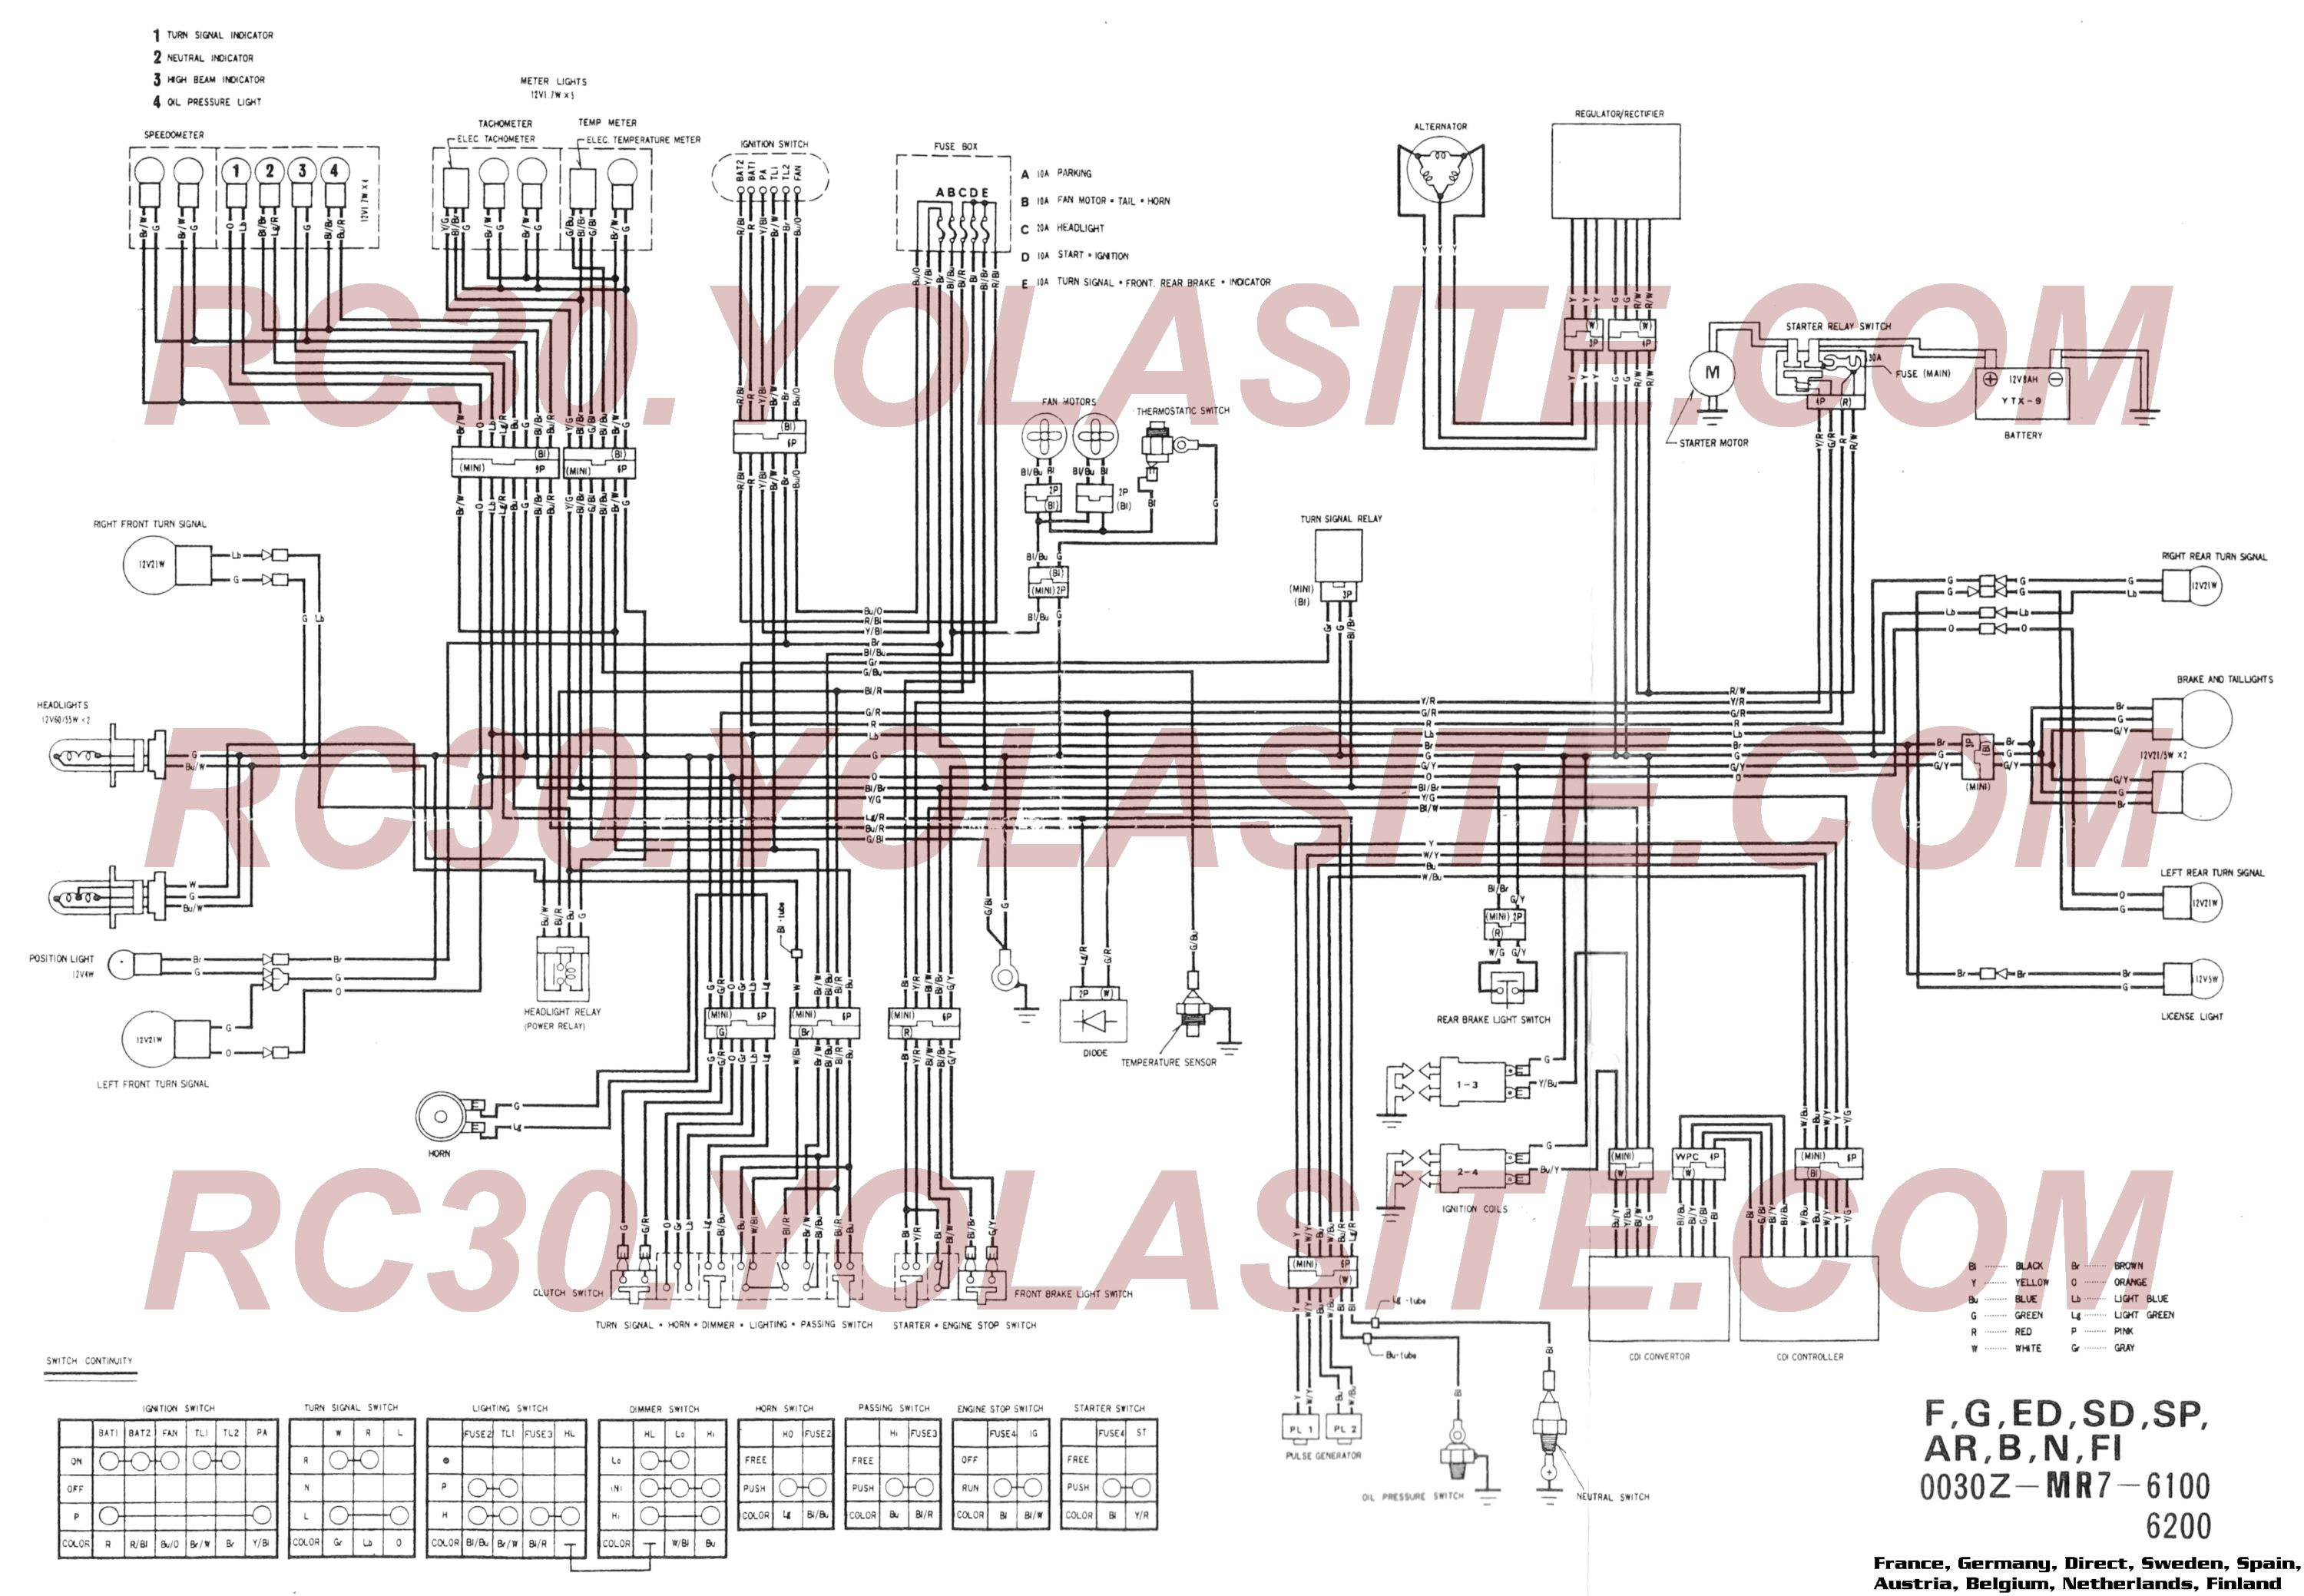 Rc30 Wiring Diagrams Germany France Direct Sales Sweden Spain Austria Belgium Netherlands And Finland